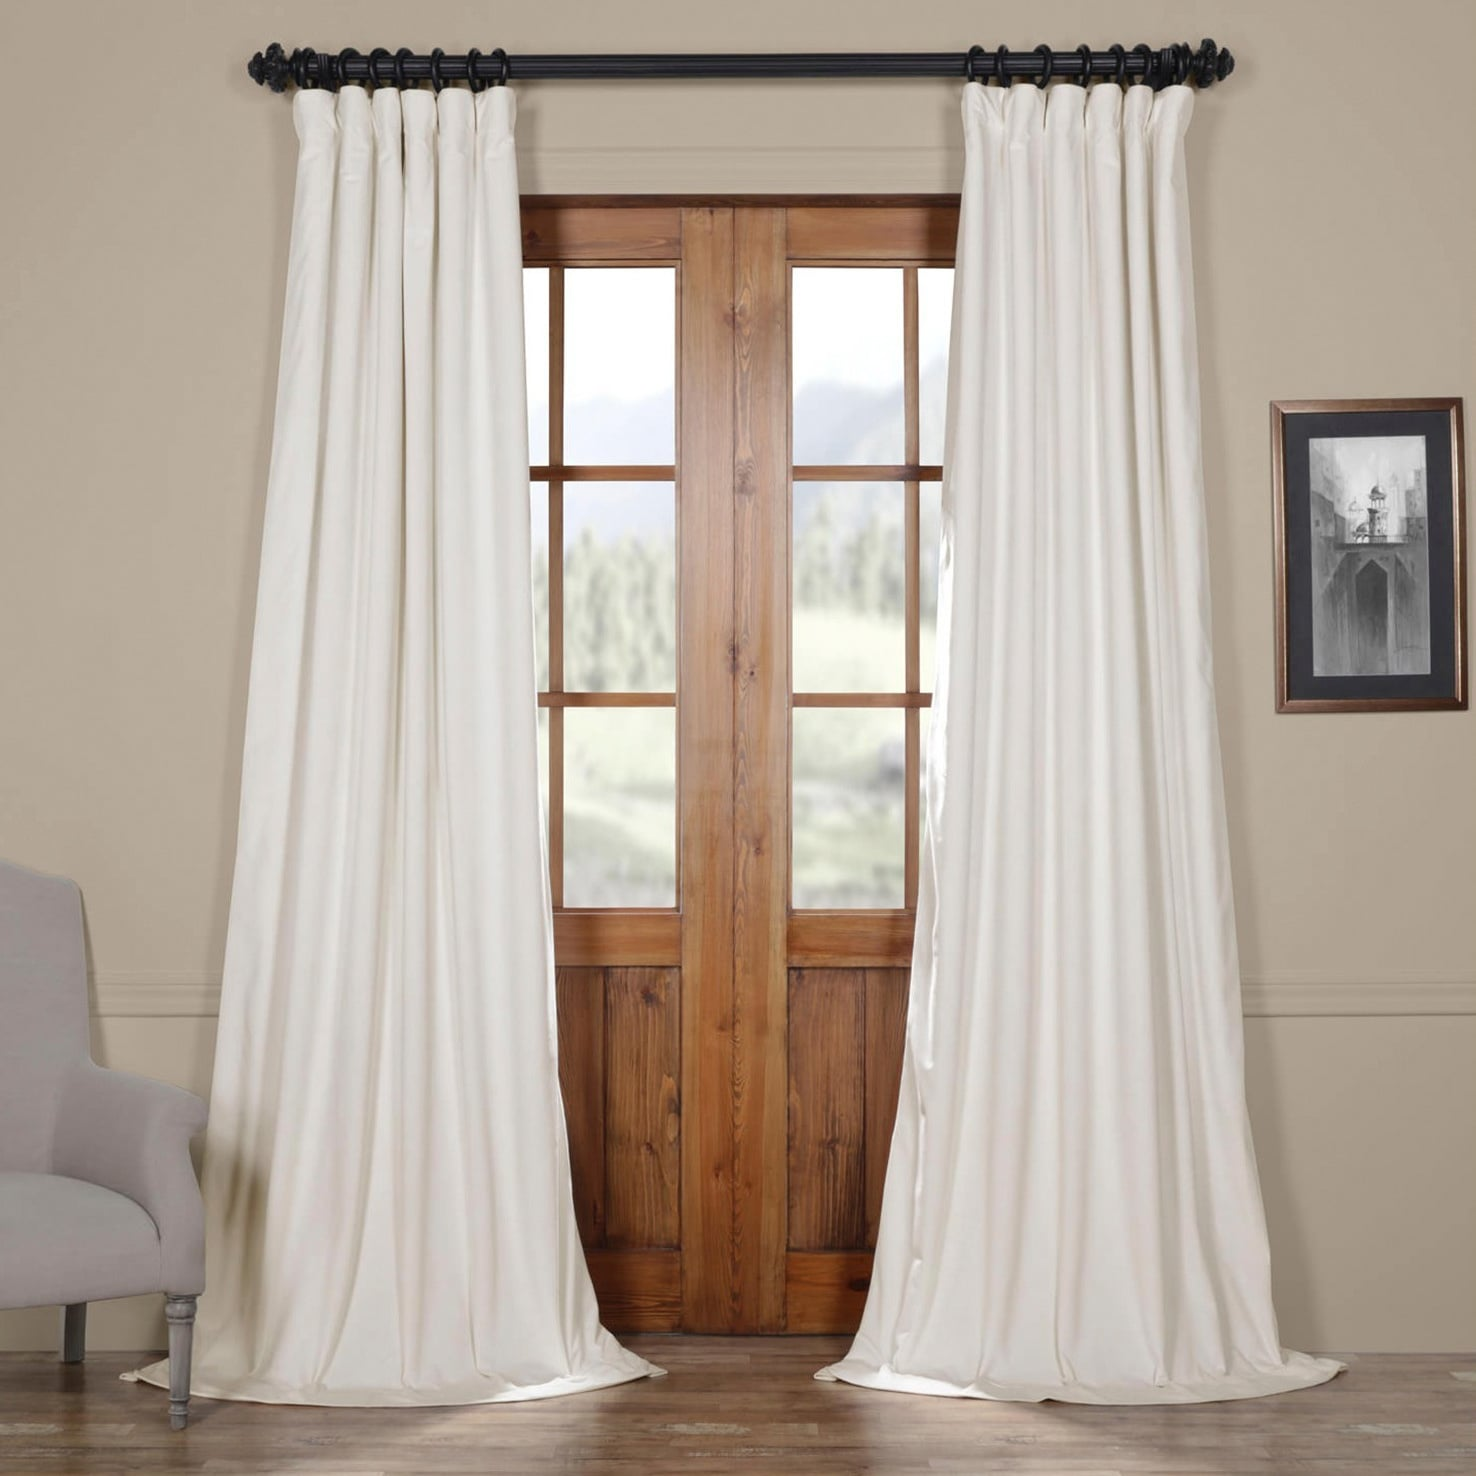 concealed hotham ready plain blackout blue curtains made top velvet heading tab